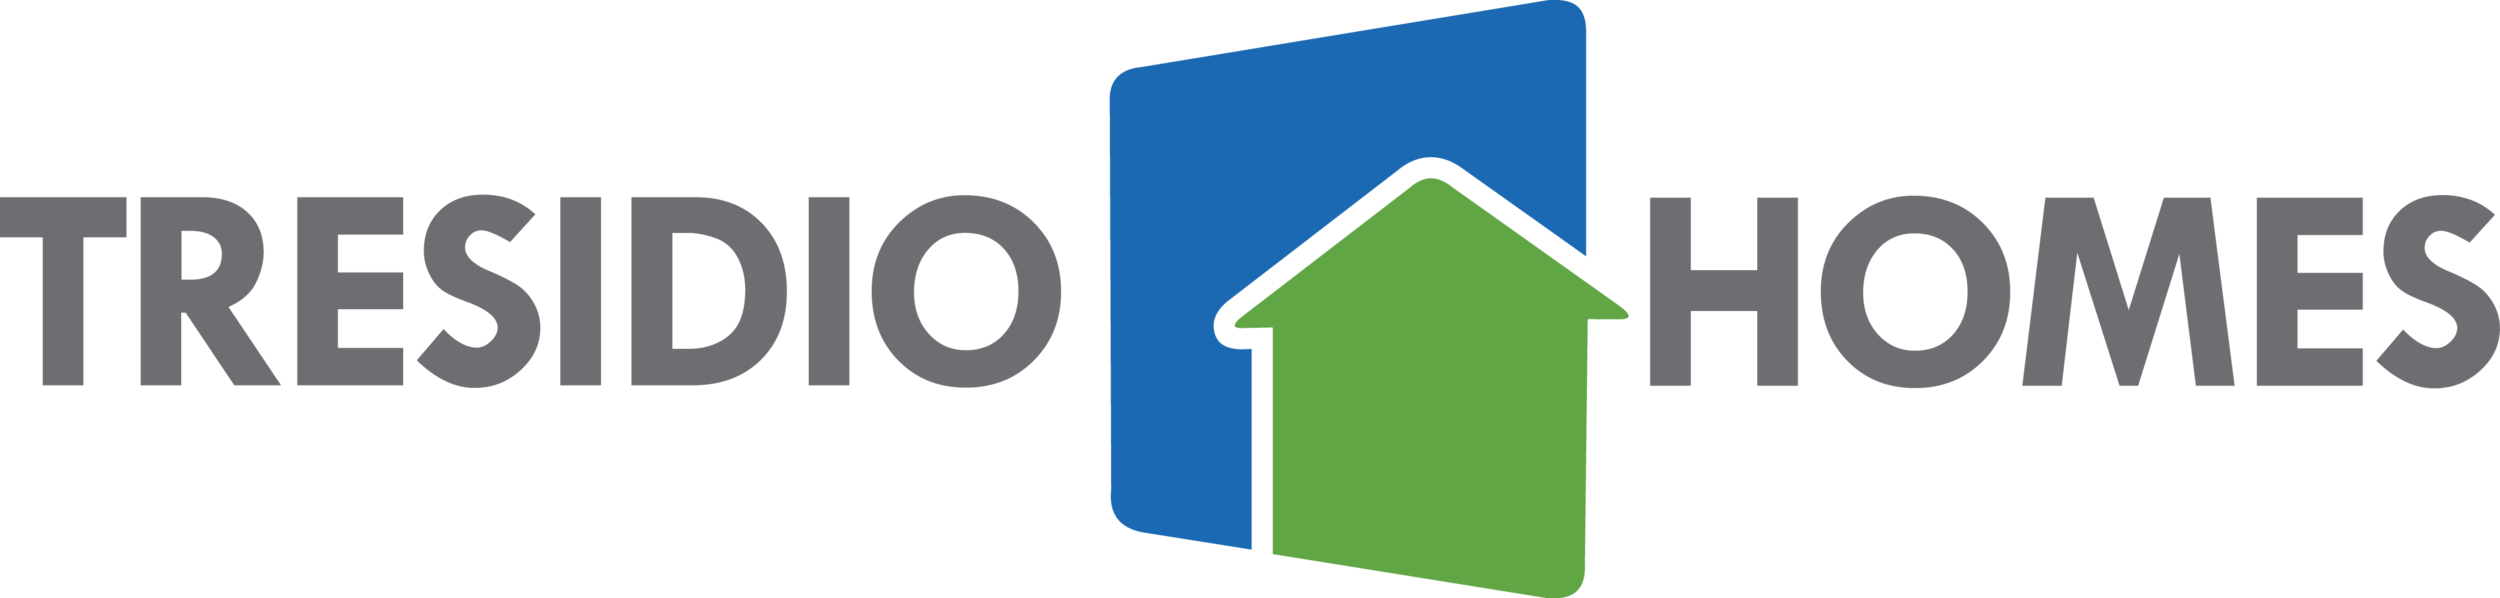 Tresidio Homes Horizontal Logo.png